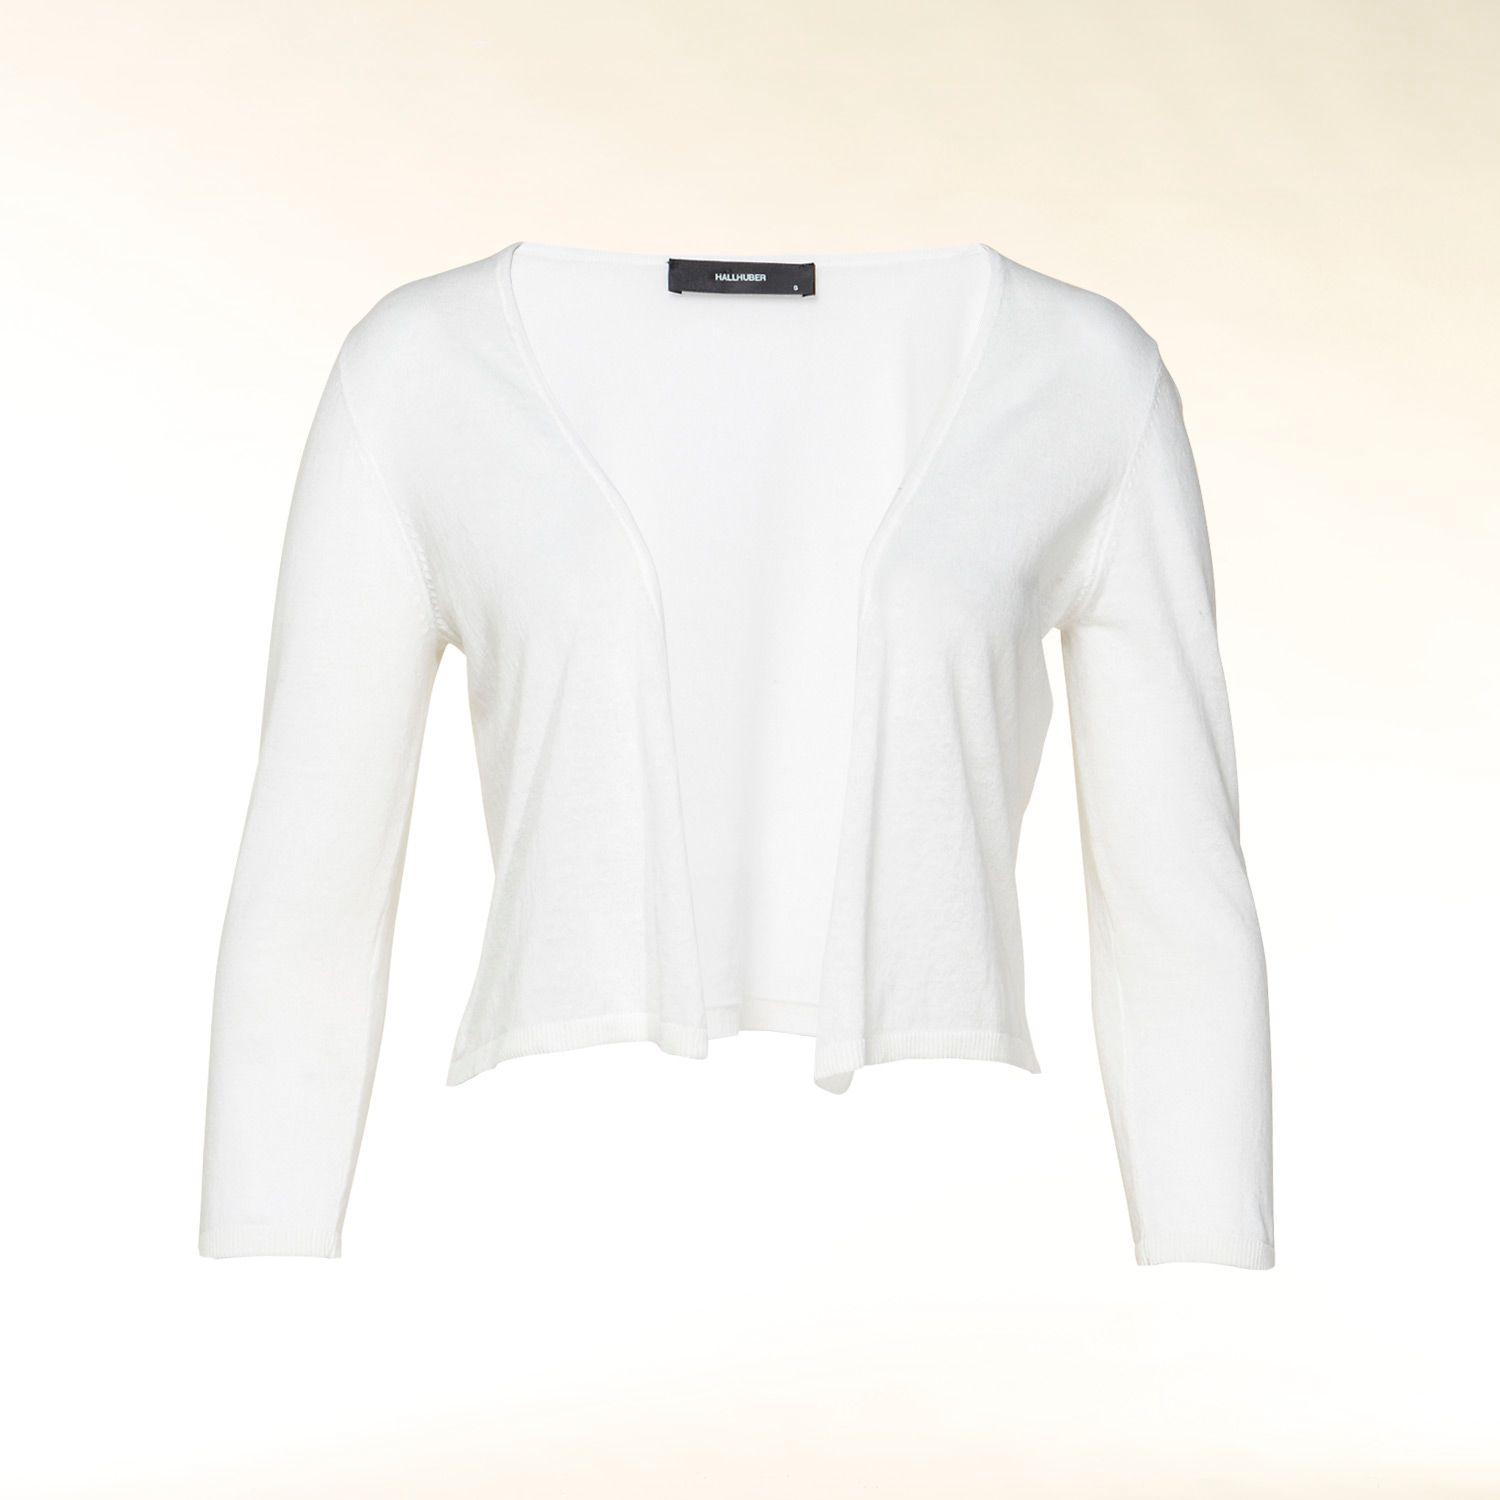 Cotton 3/4 sleeve cropped cardigan